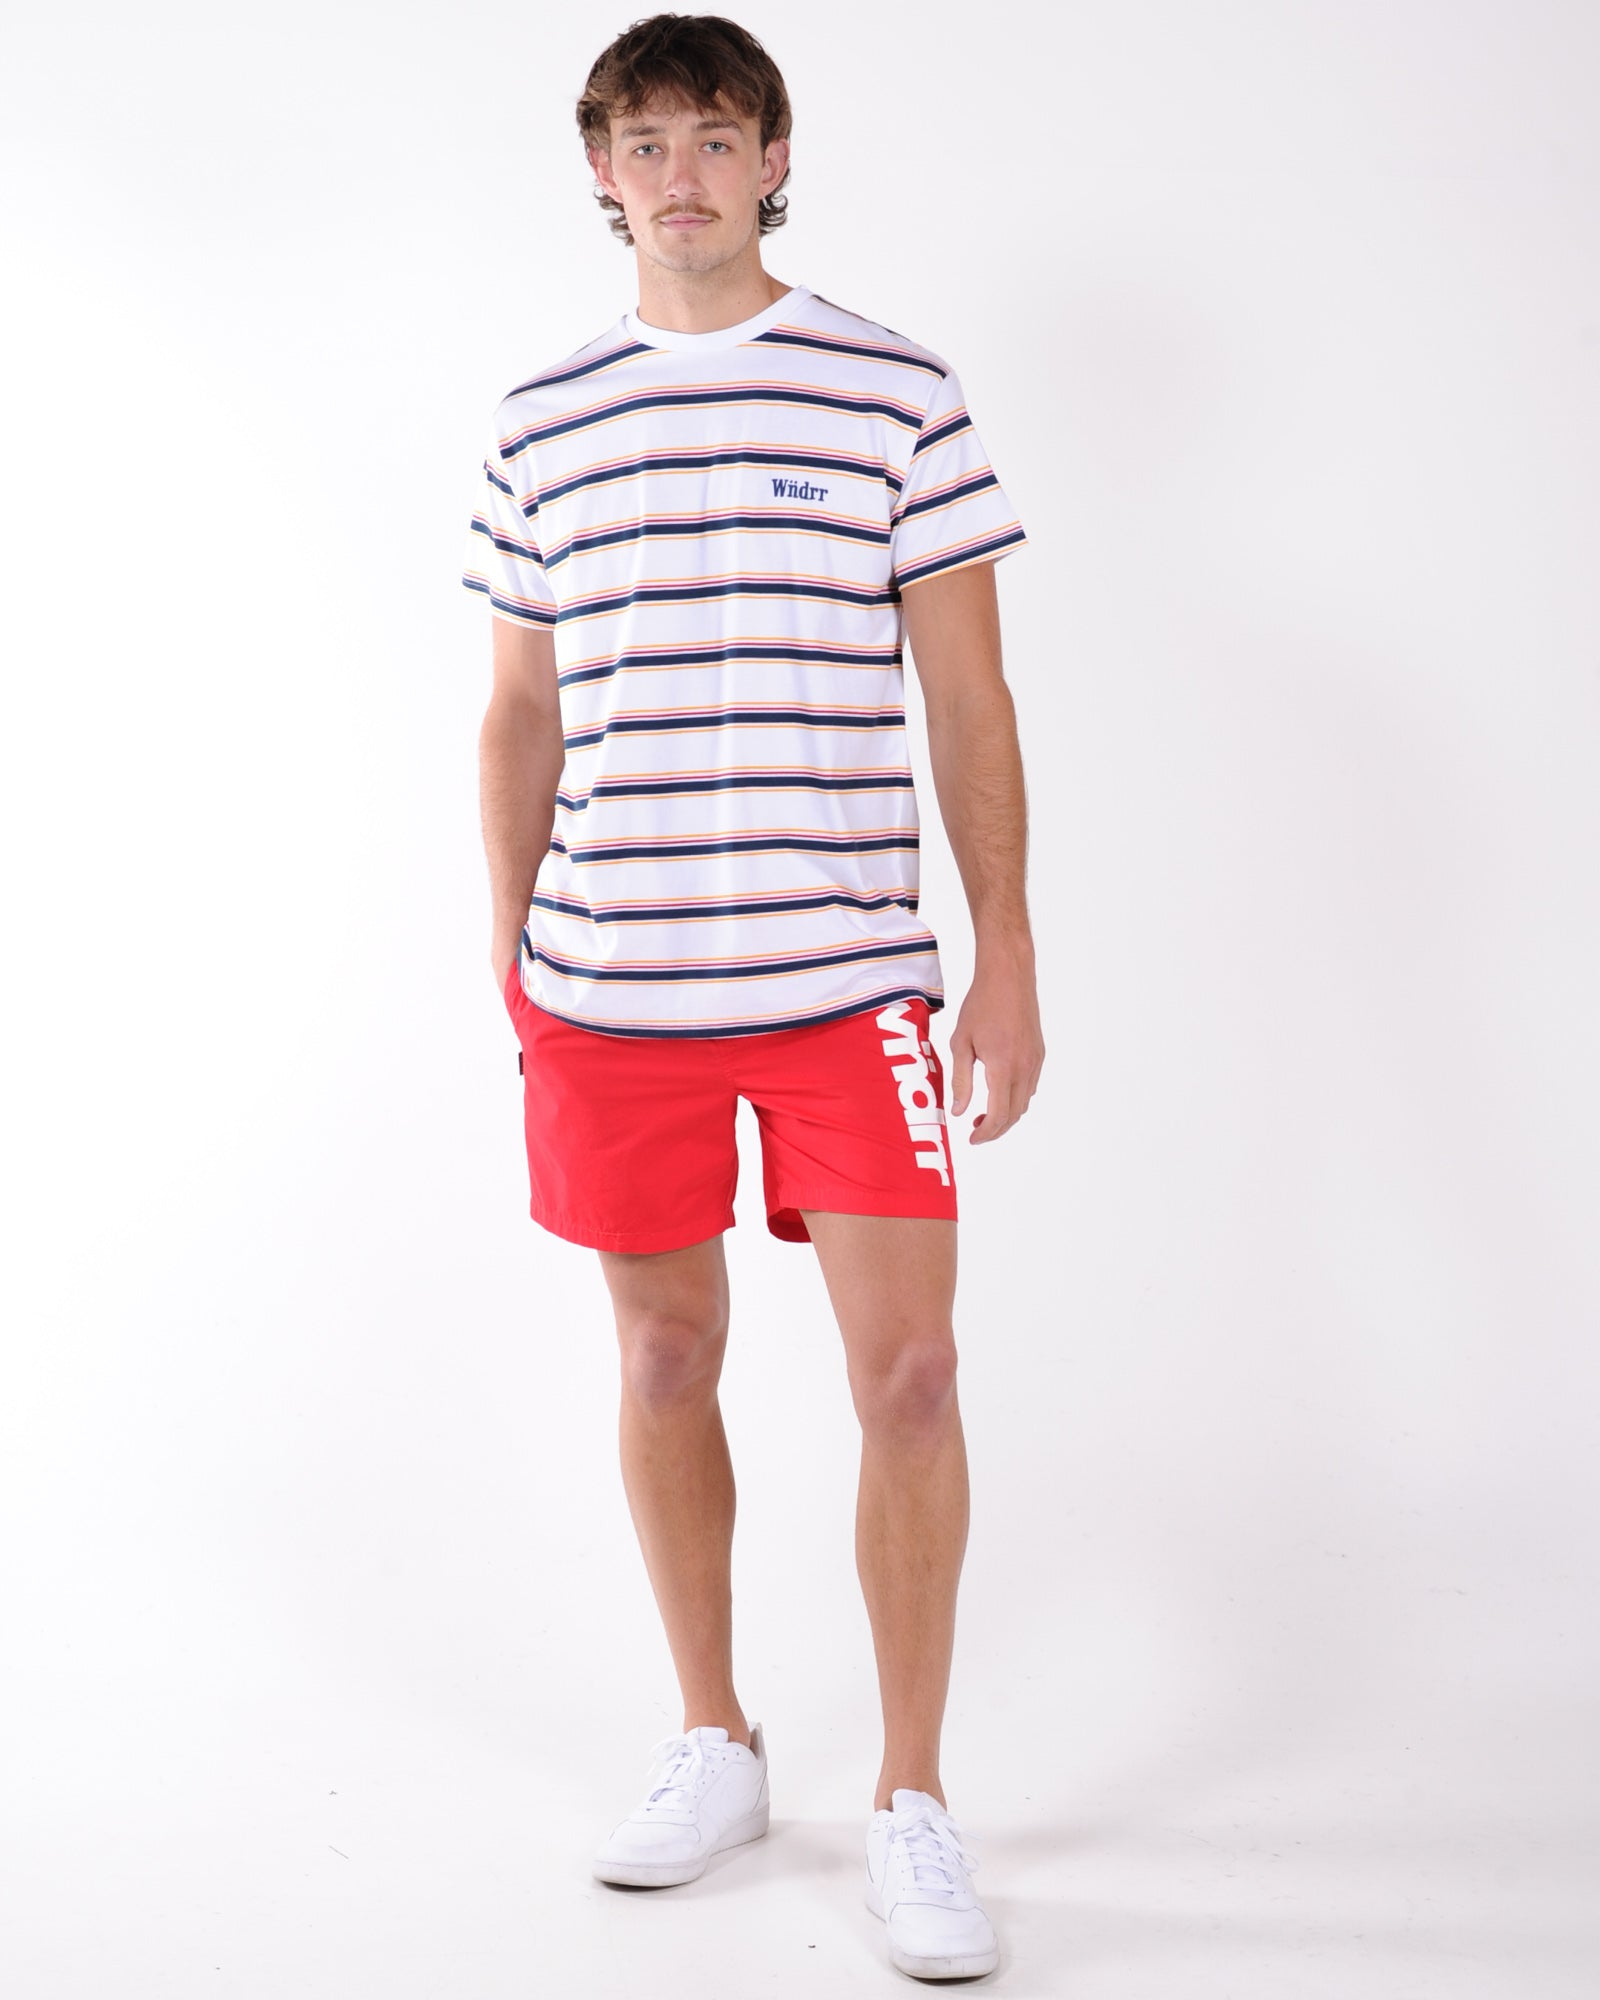 Wndrr Max Stripe Custom Fit Tee - White